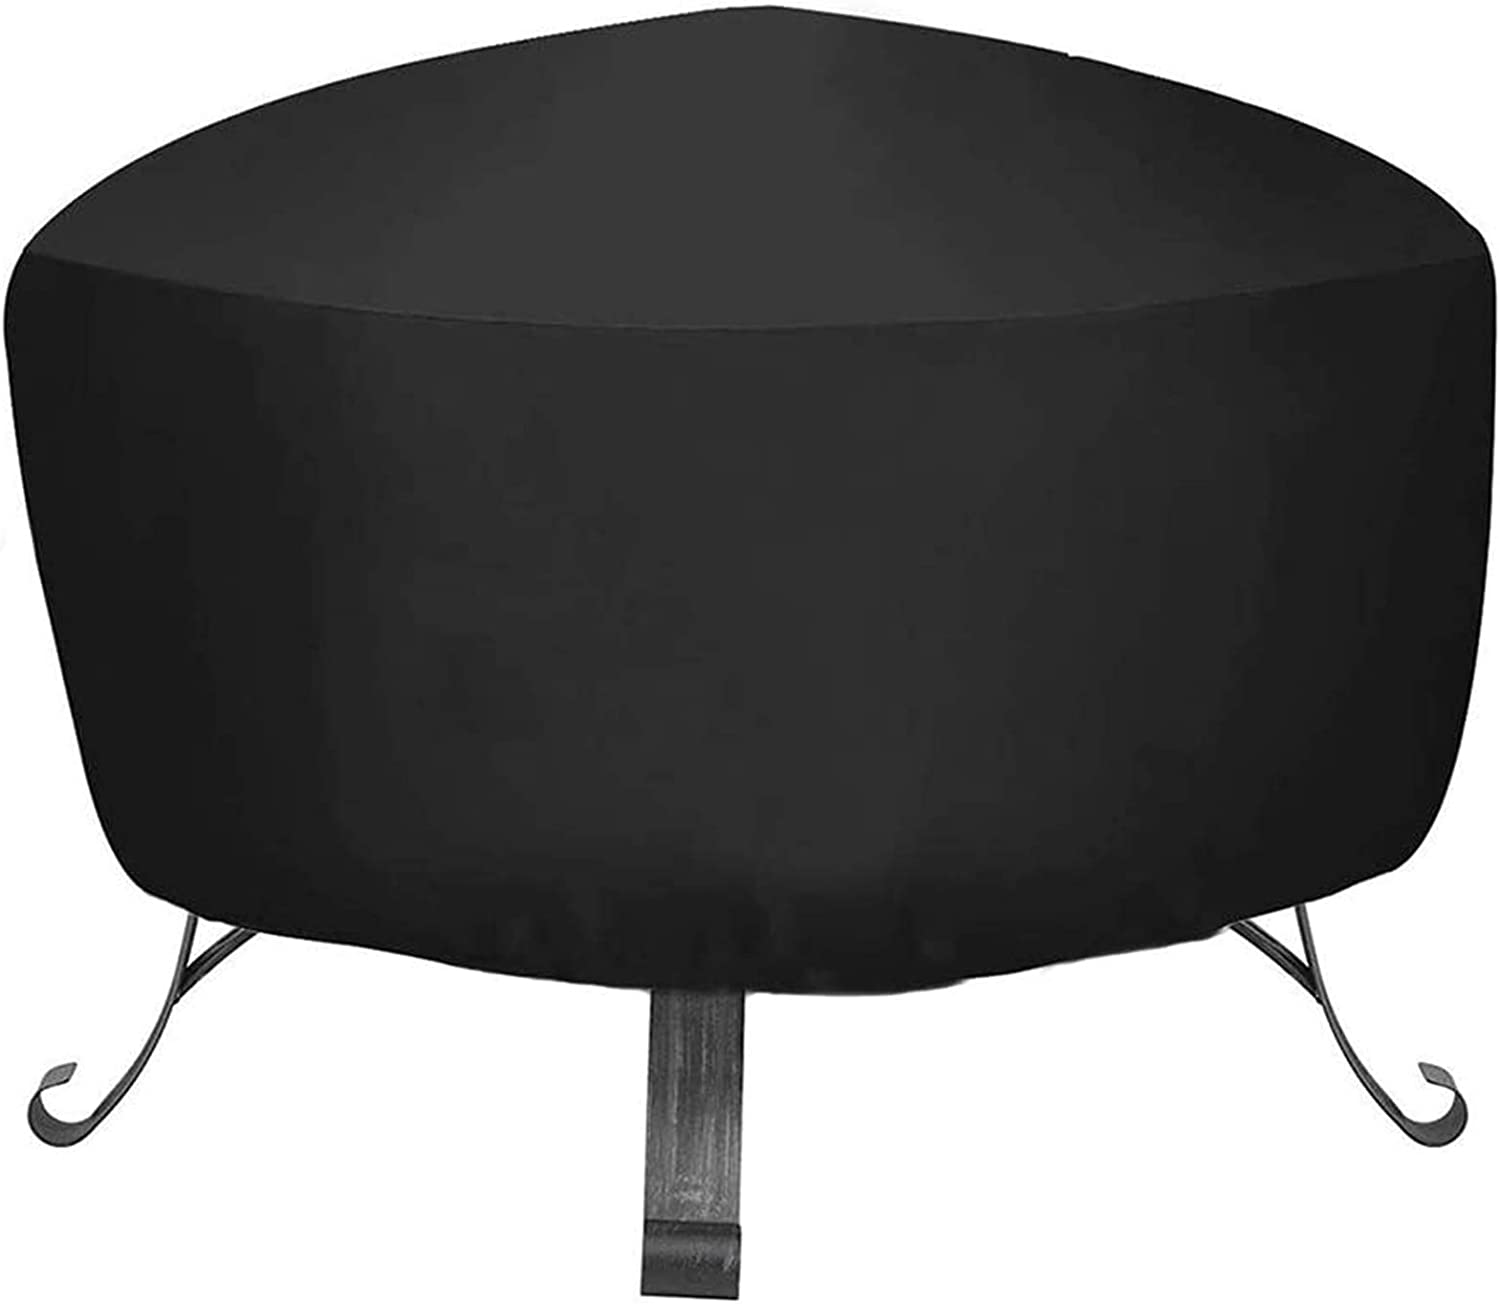 Fire Pit Cover Outdoor Round Heavy Duty Weather Resistant Fire Bowl Cover Waterproof Dustproof Firepit Furniture Table Covers with Thick PVC Coating 36x18 inch